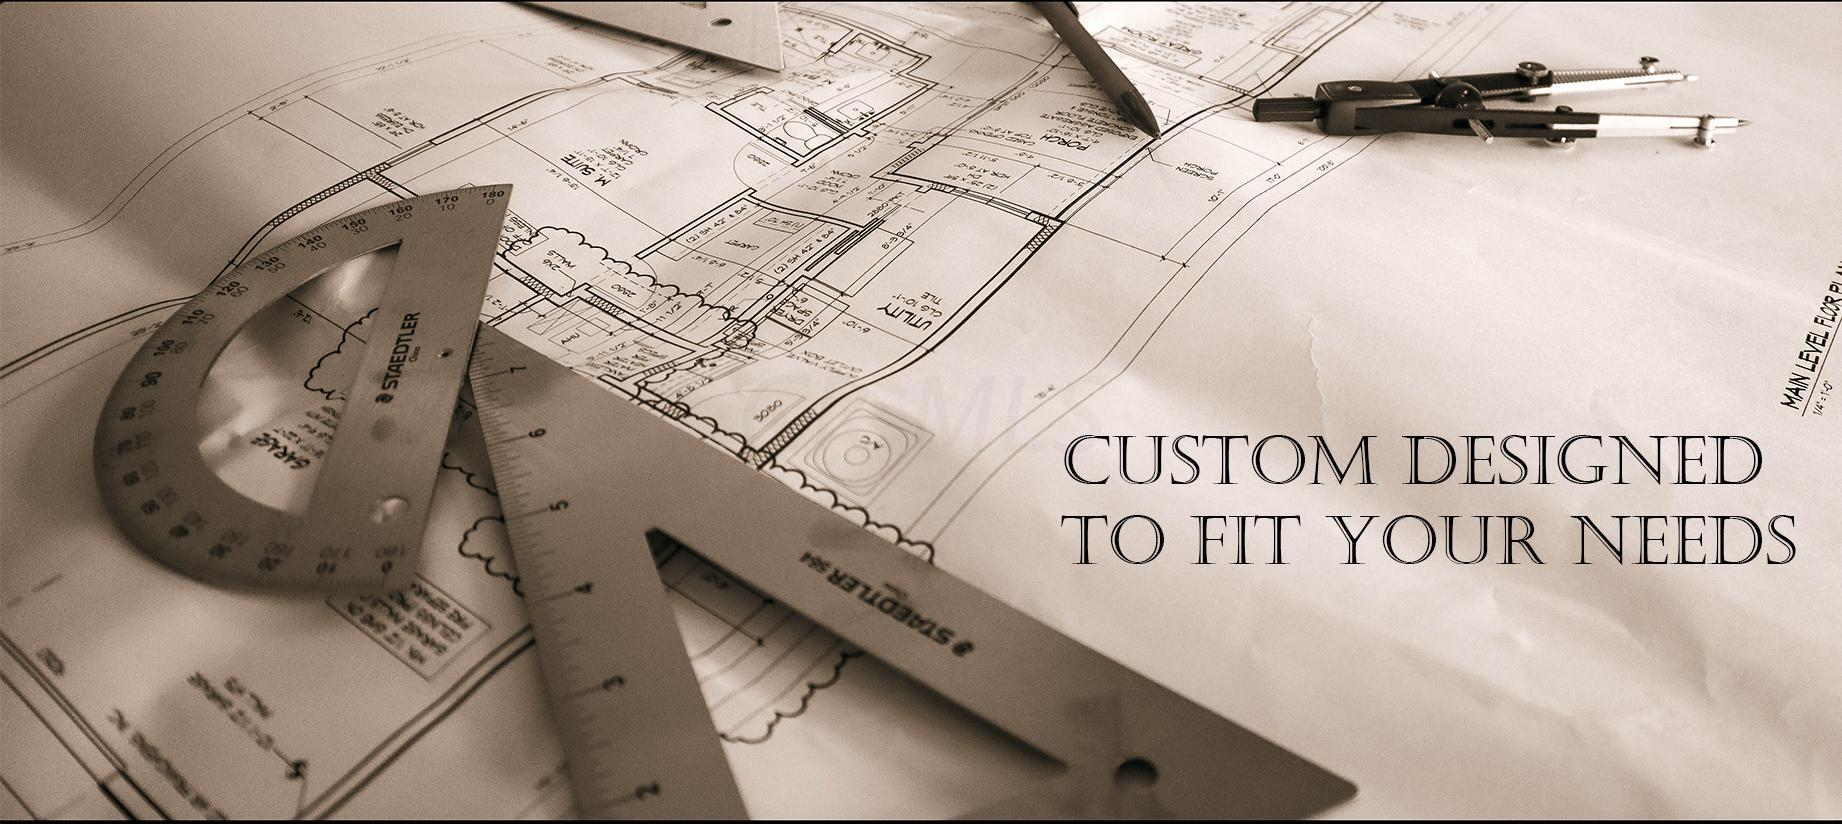 custom designed to fit your needs 2